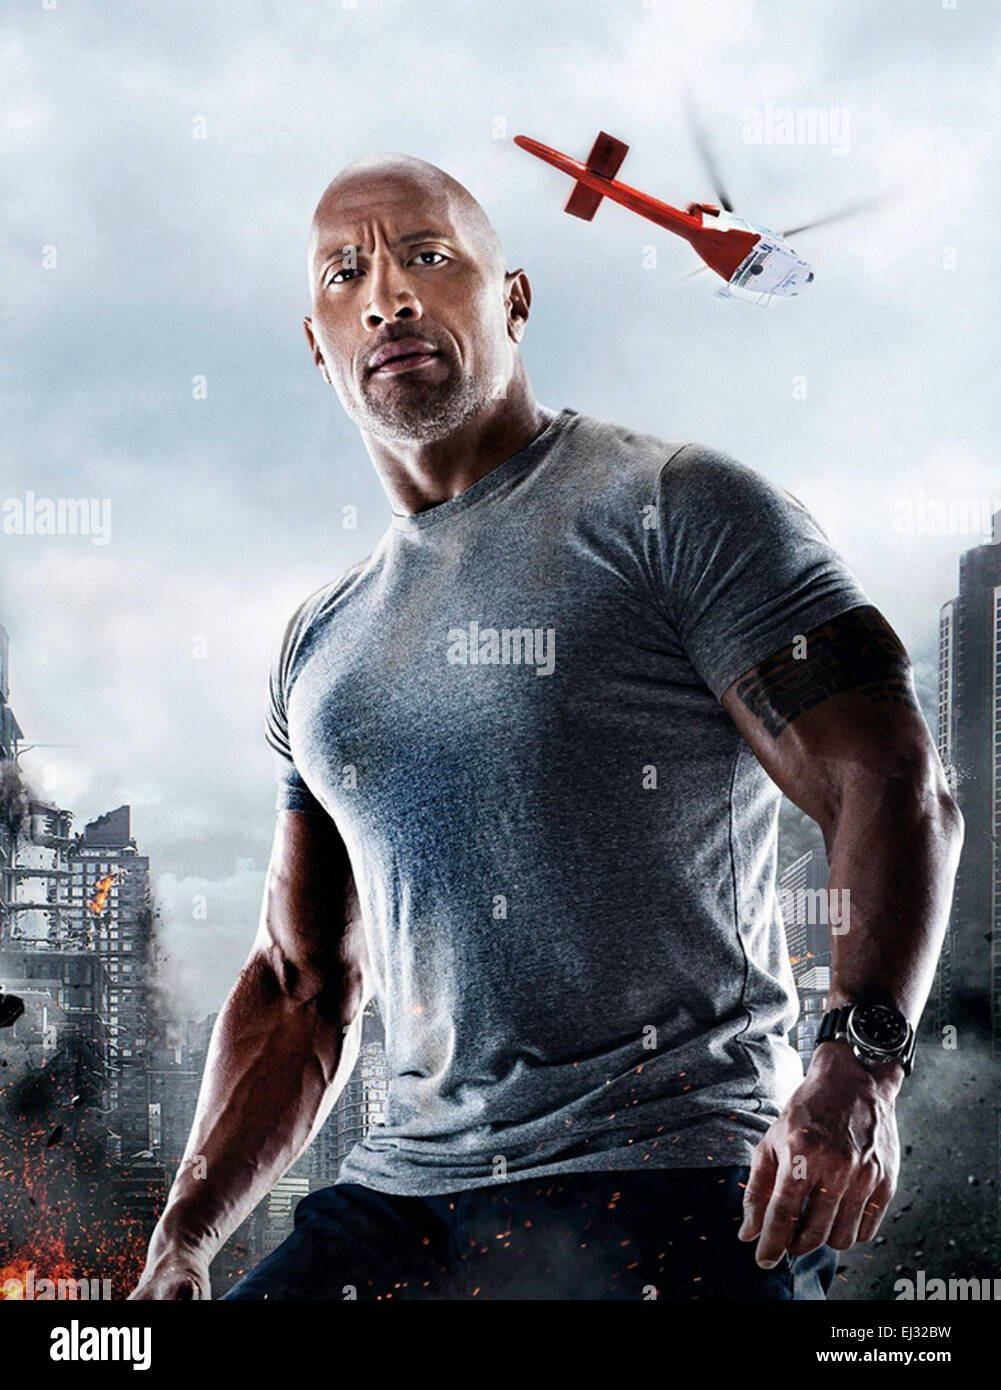 san andreas 2015 warner bros film with the rock stock. Black Bedroom Furniture Sets. Home Design Ideas